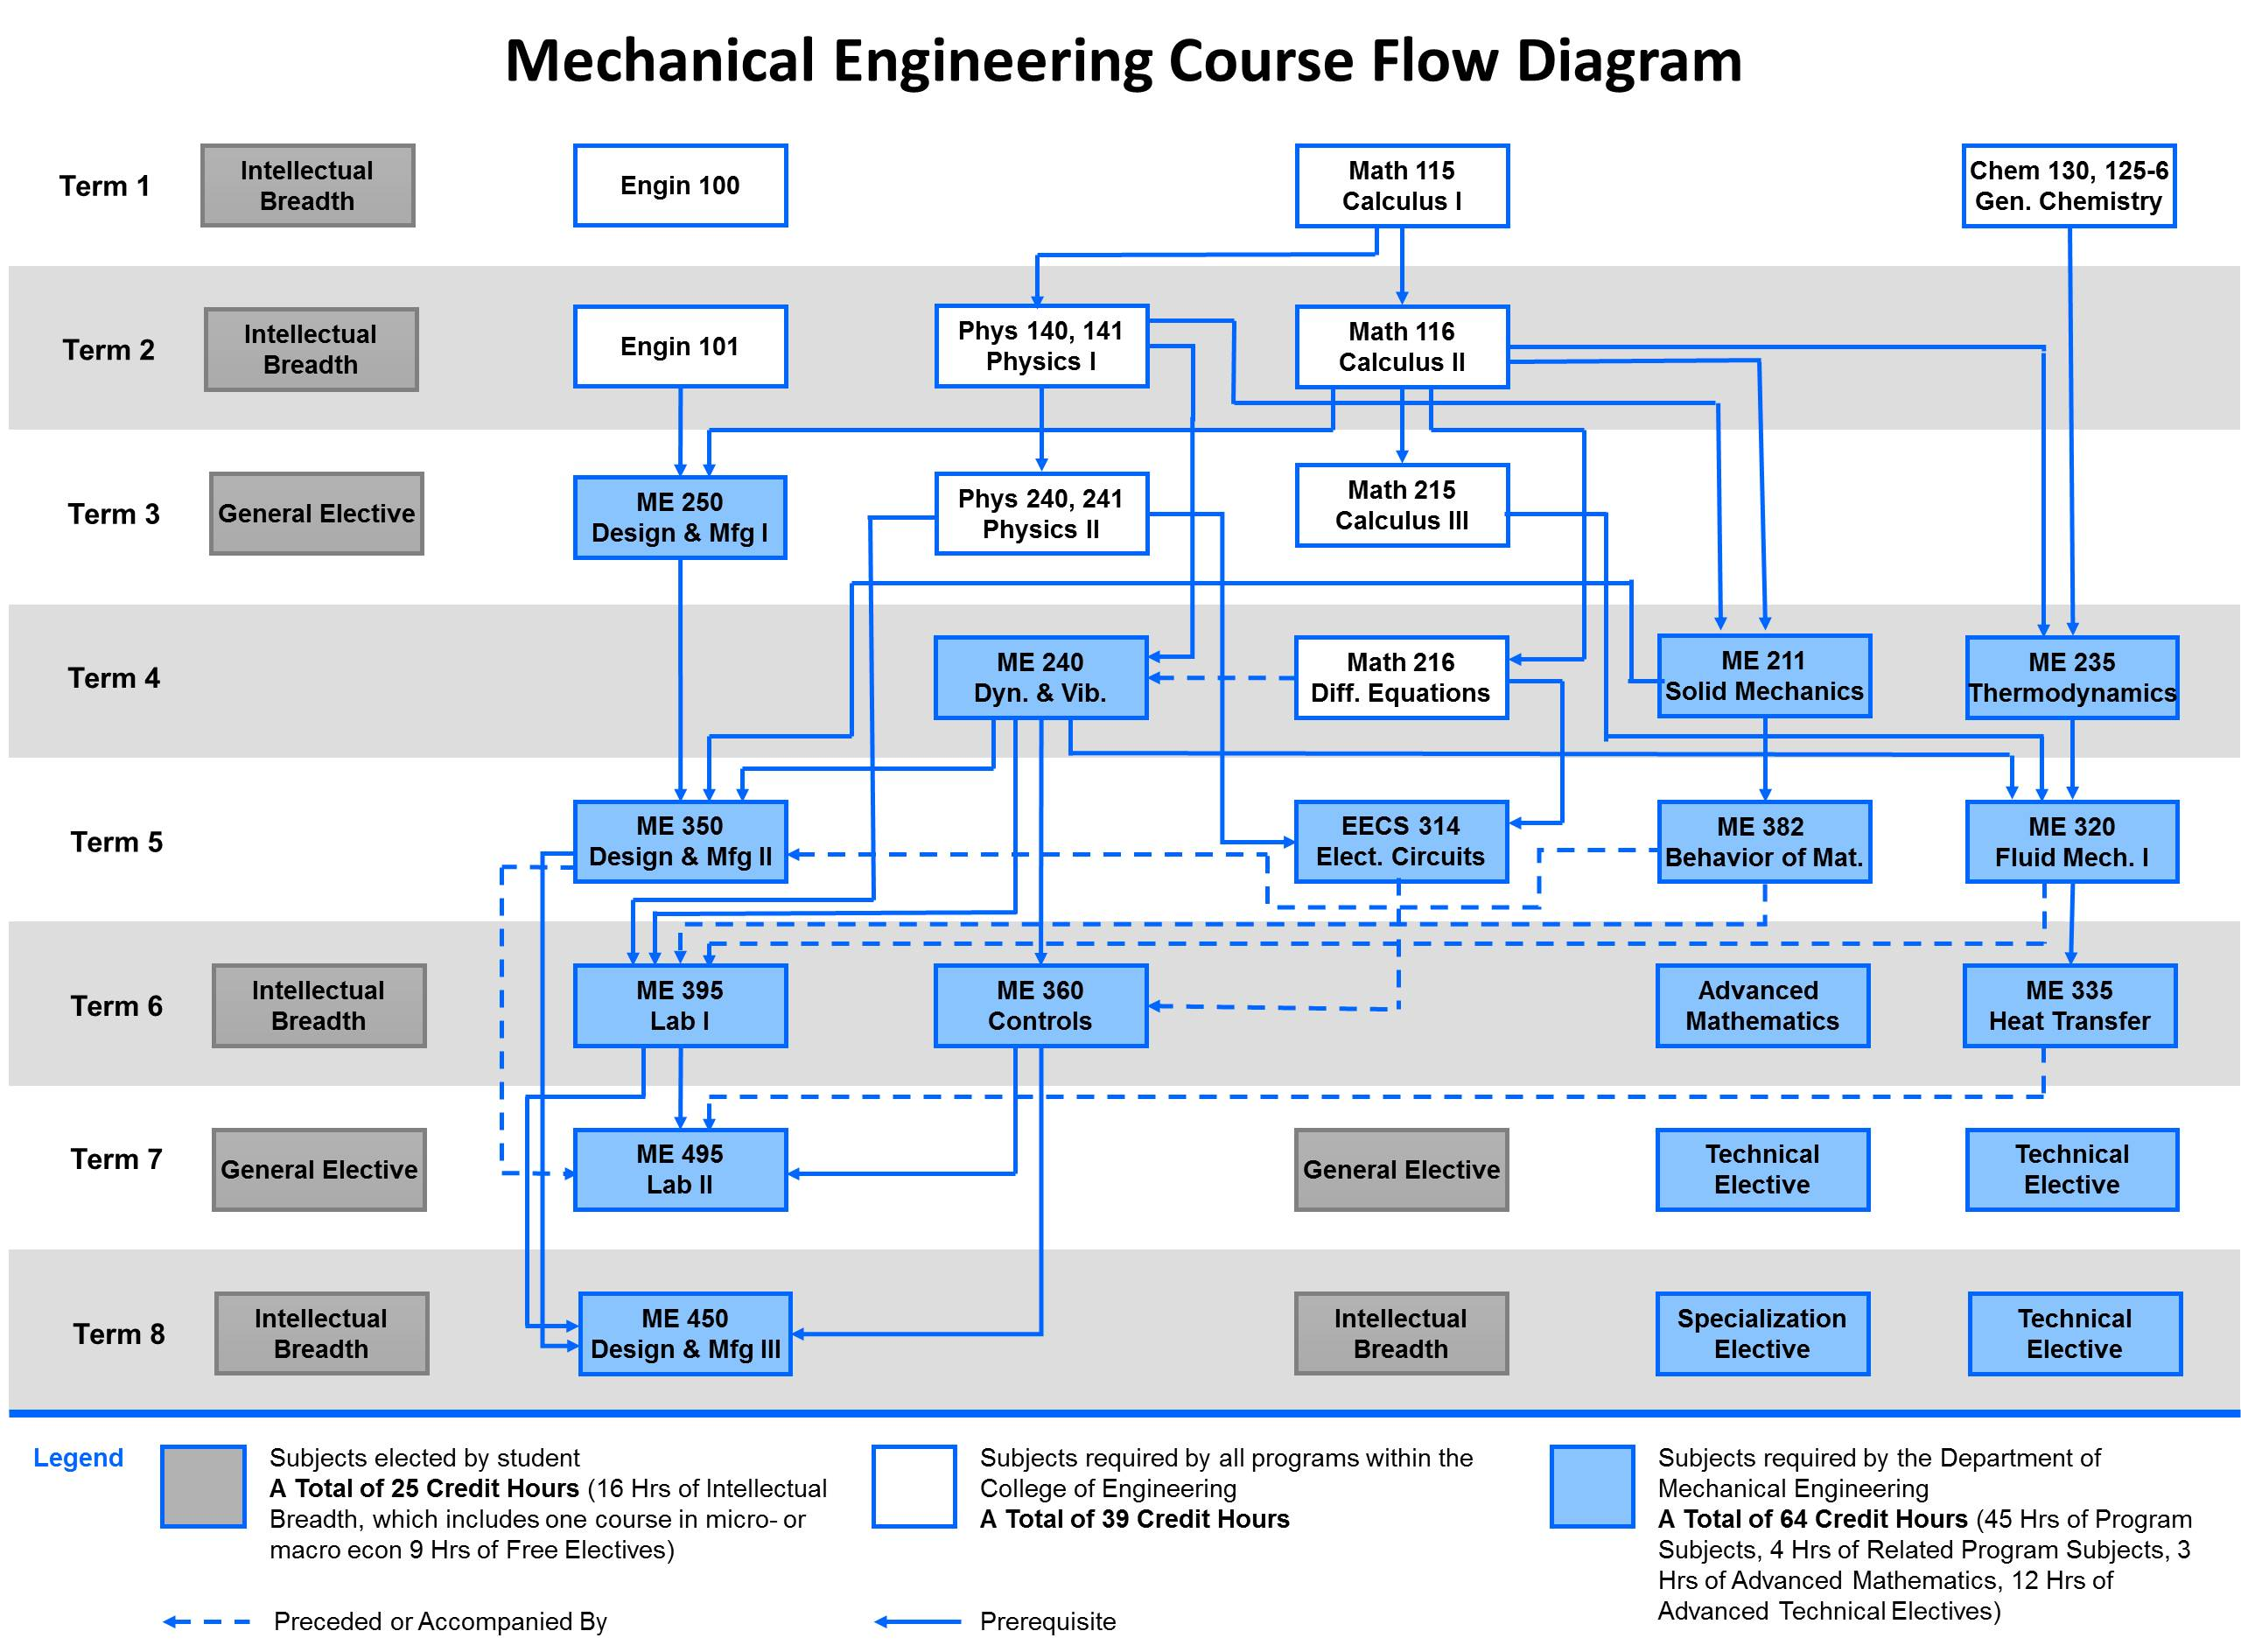 Usf Chemical Engineering Flow Chart